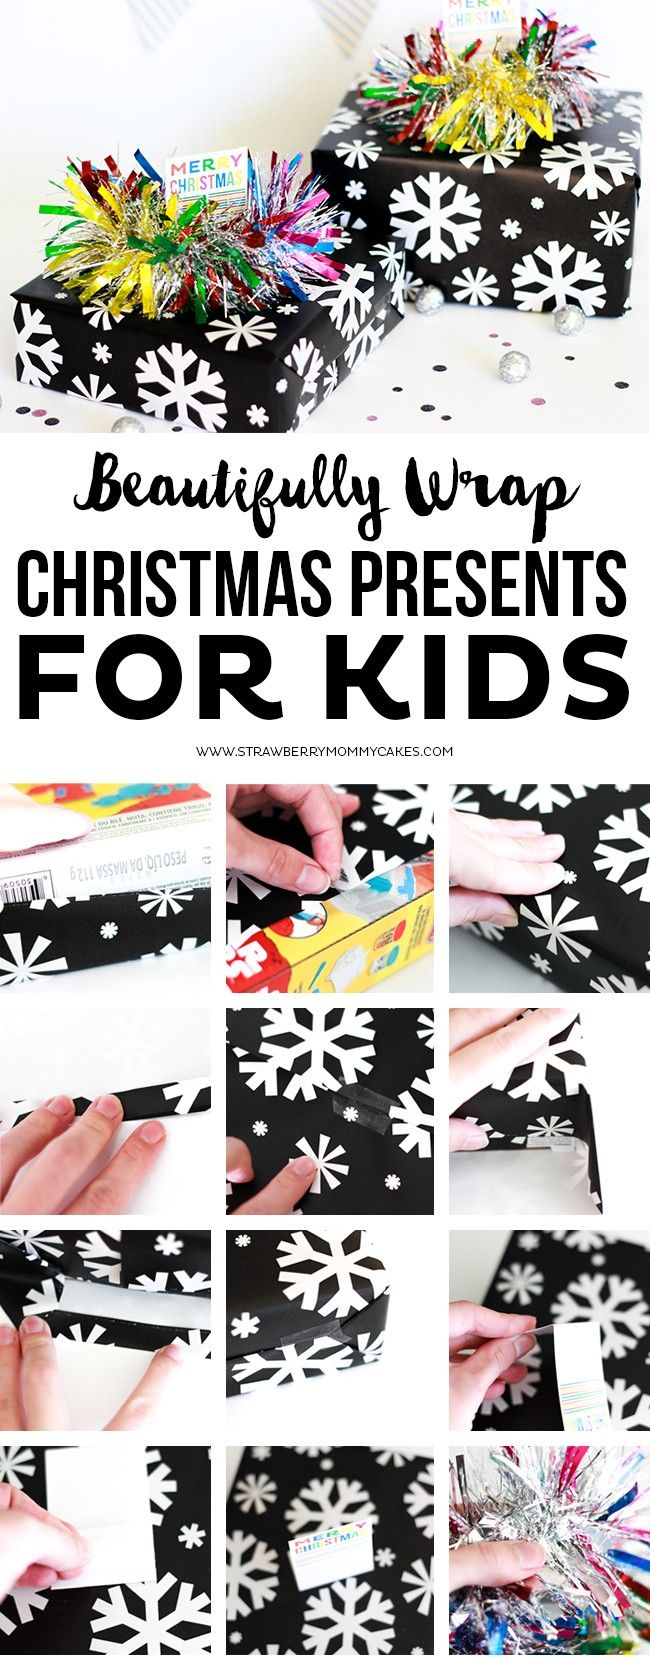 How to Beautifully Wrap Christmas Presents for Kids. I love this Christmas Garland from @BigLots and my kids are going to LOVE what's inside! #BigSeason #BigLots [ad]